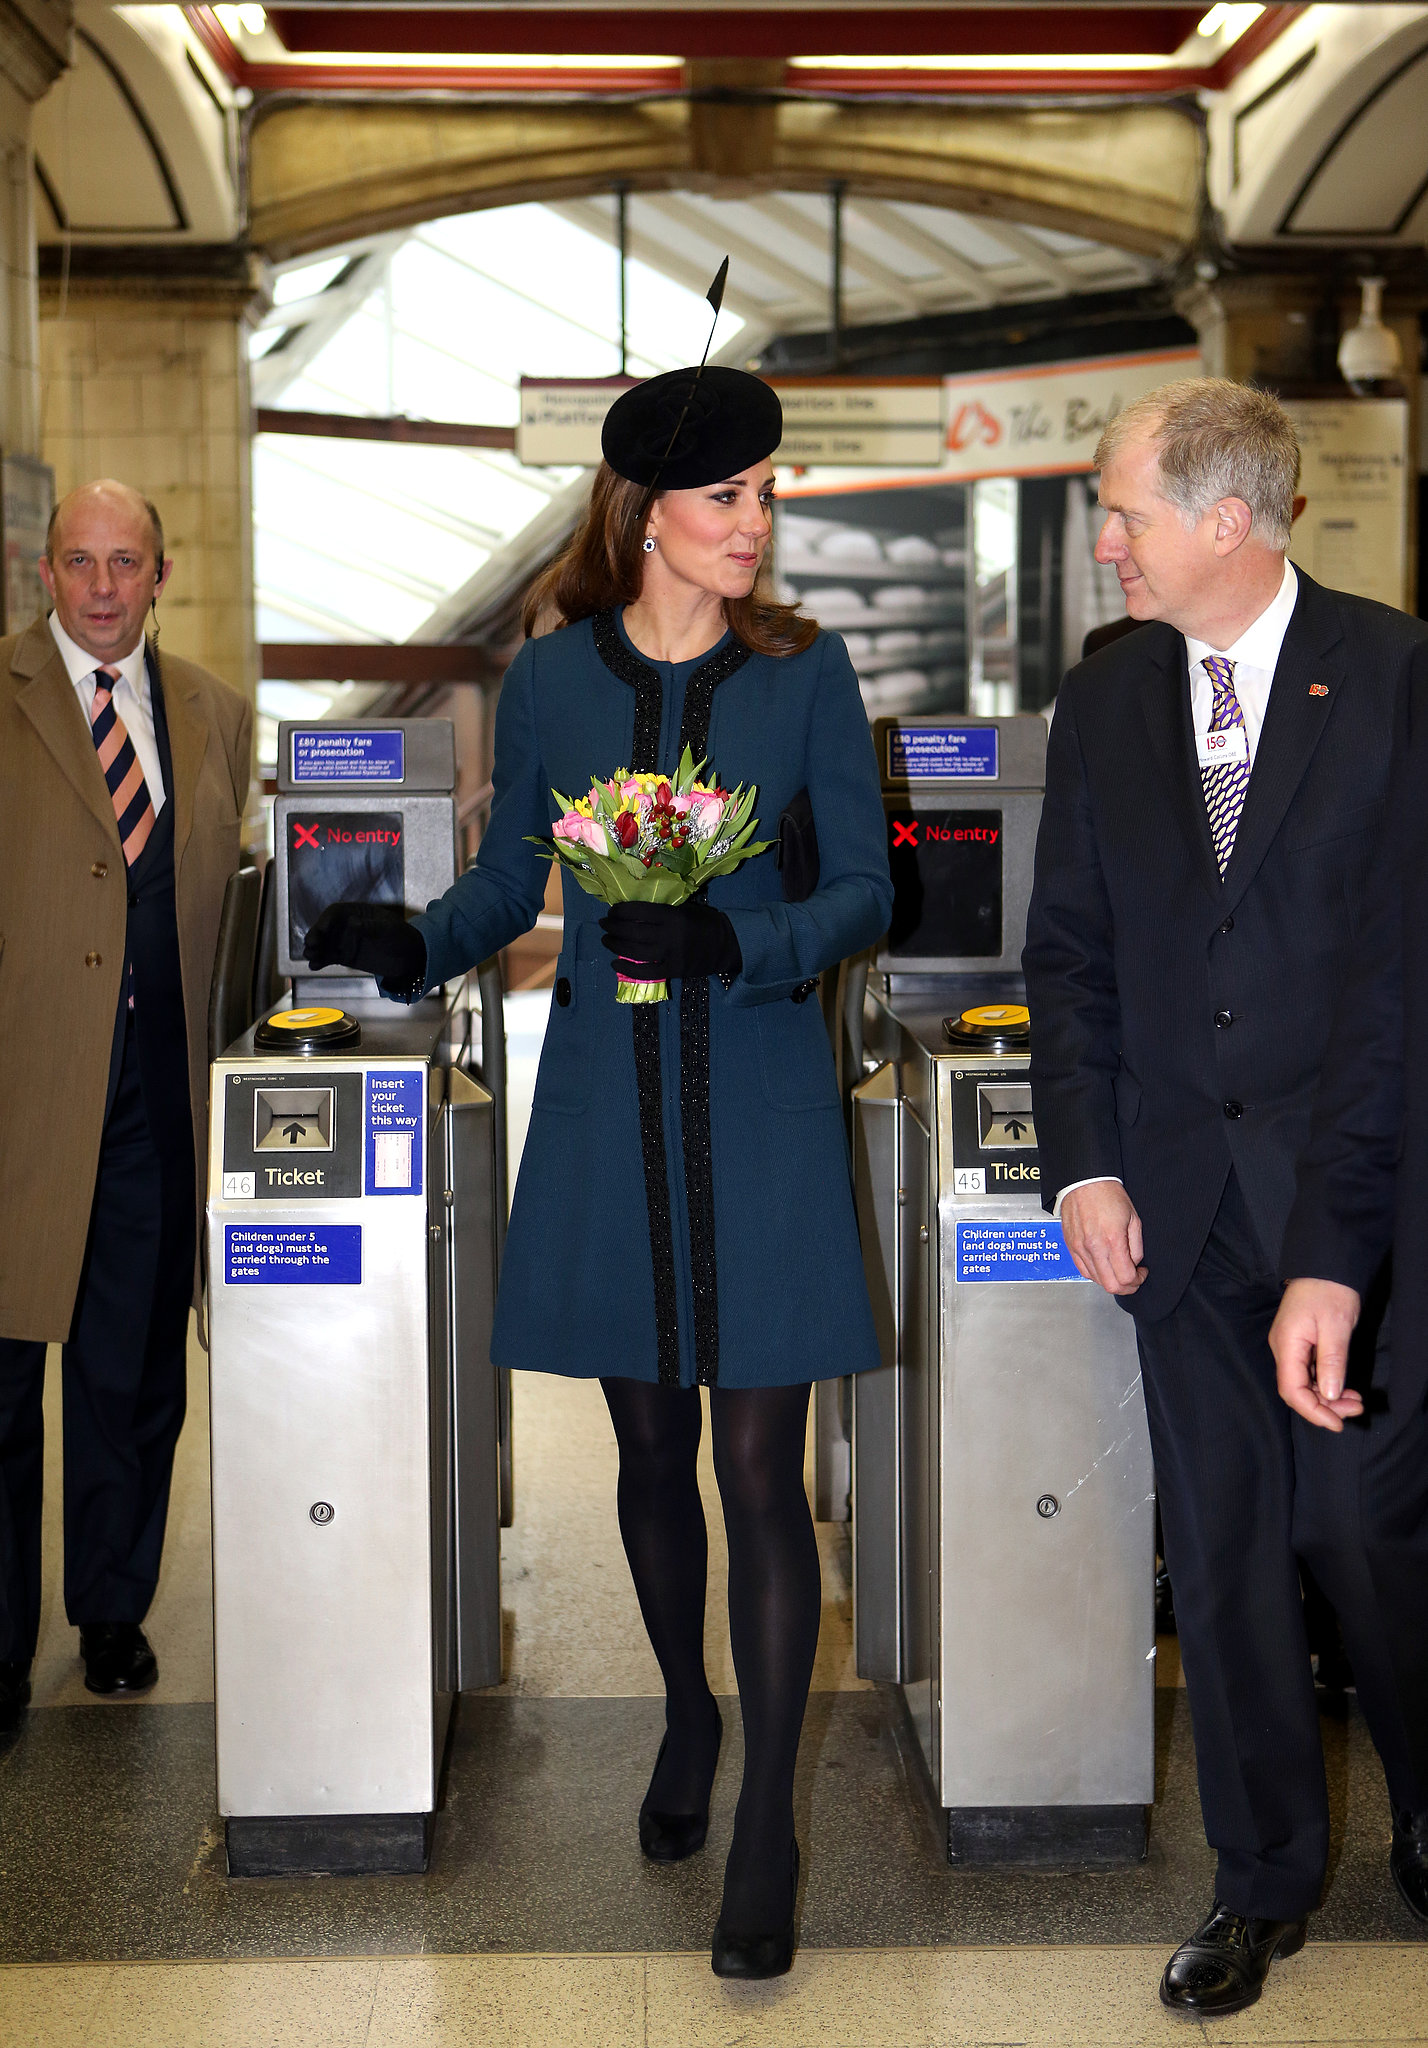 Kate toured a subway station in London with Queen Elizabeth II in March 2013.